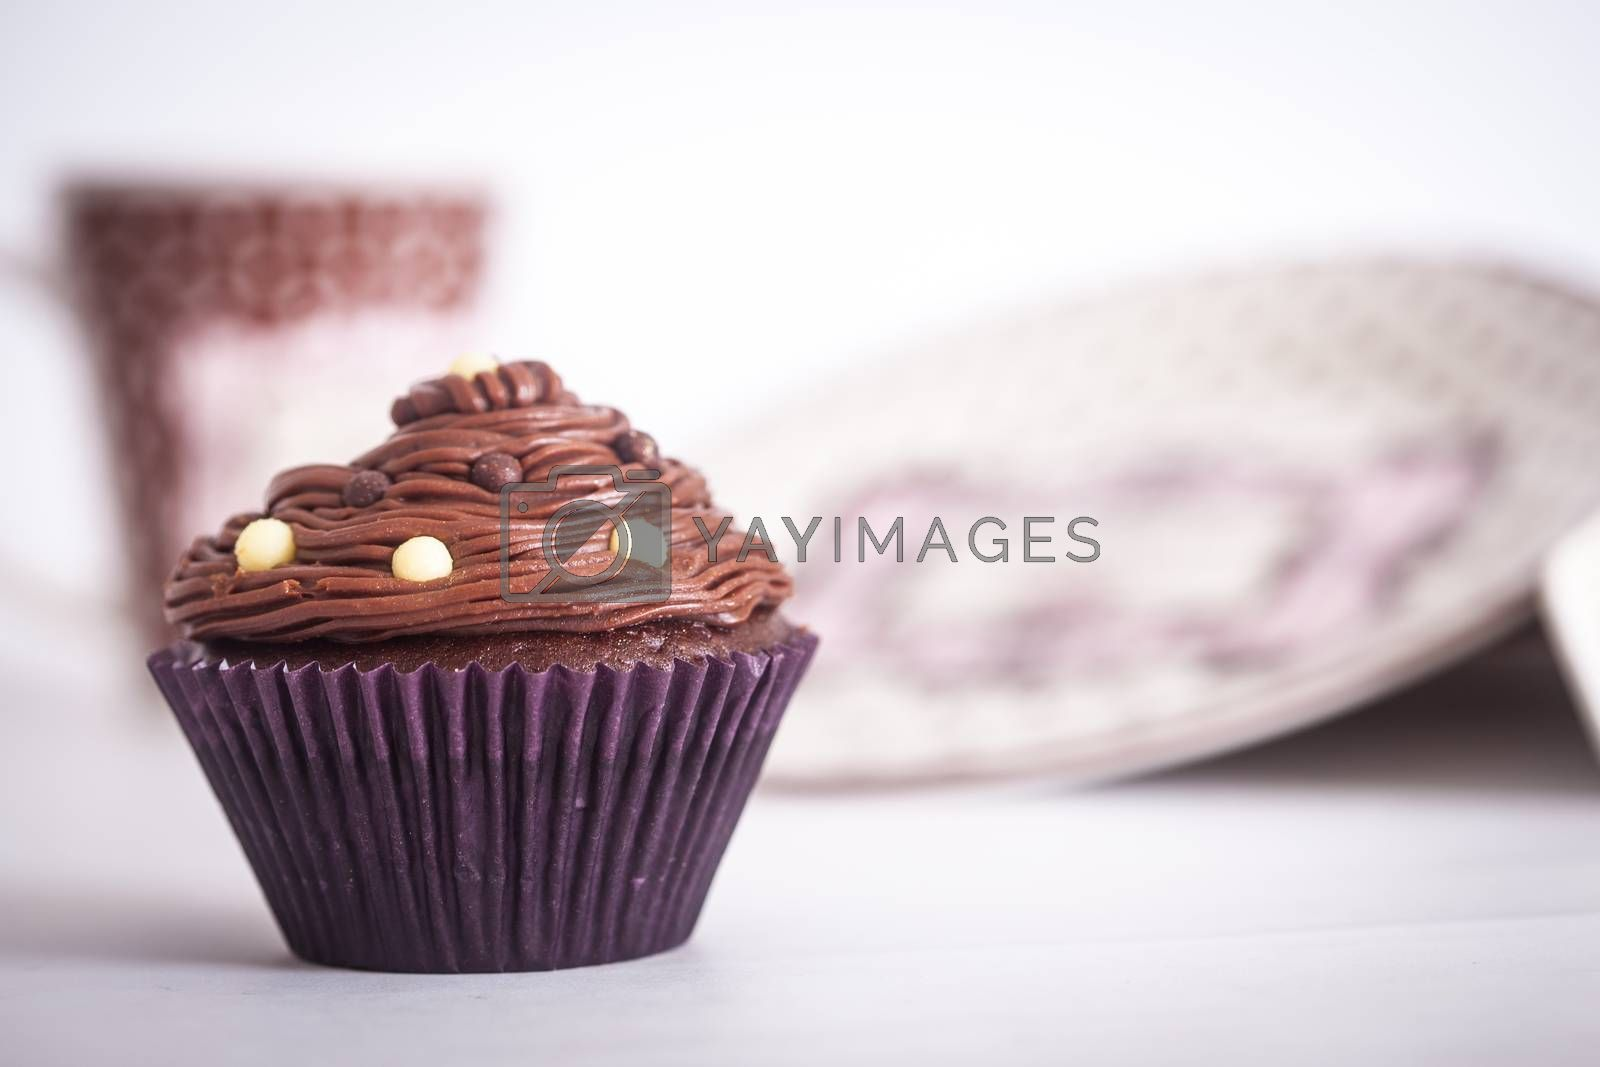 A cupcake in front of plates and a mug, on a white background.